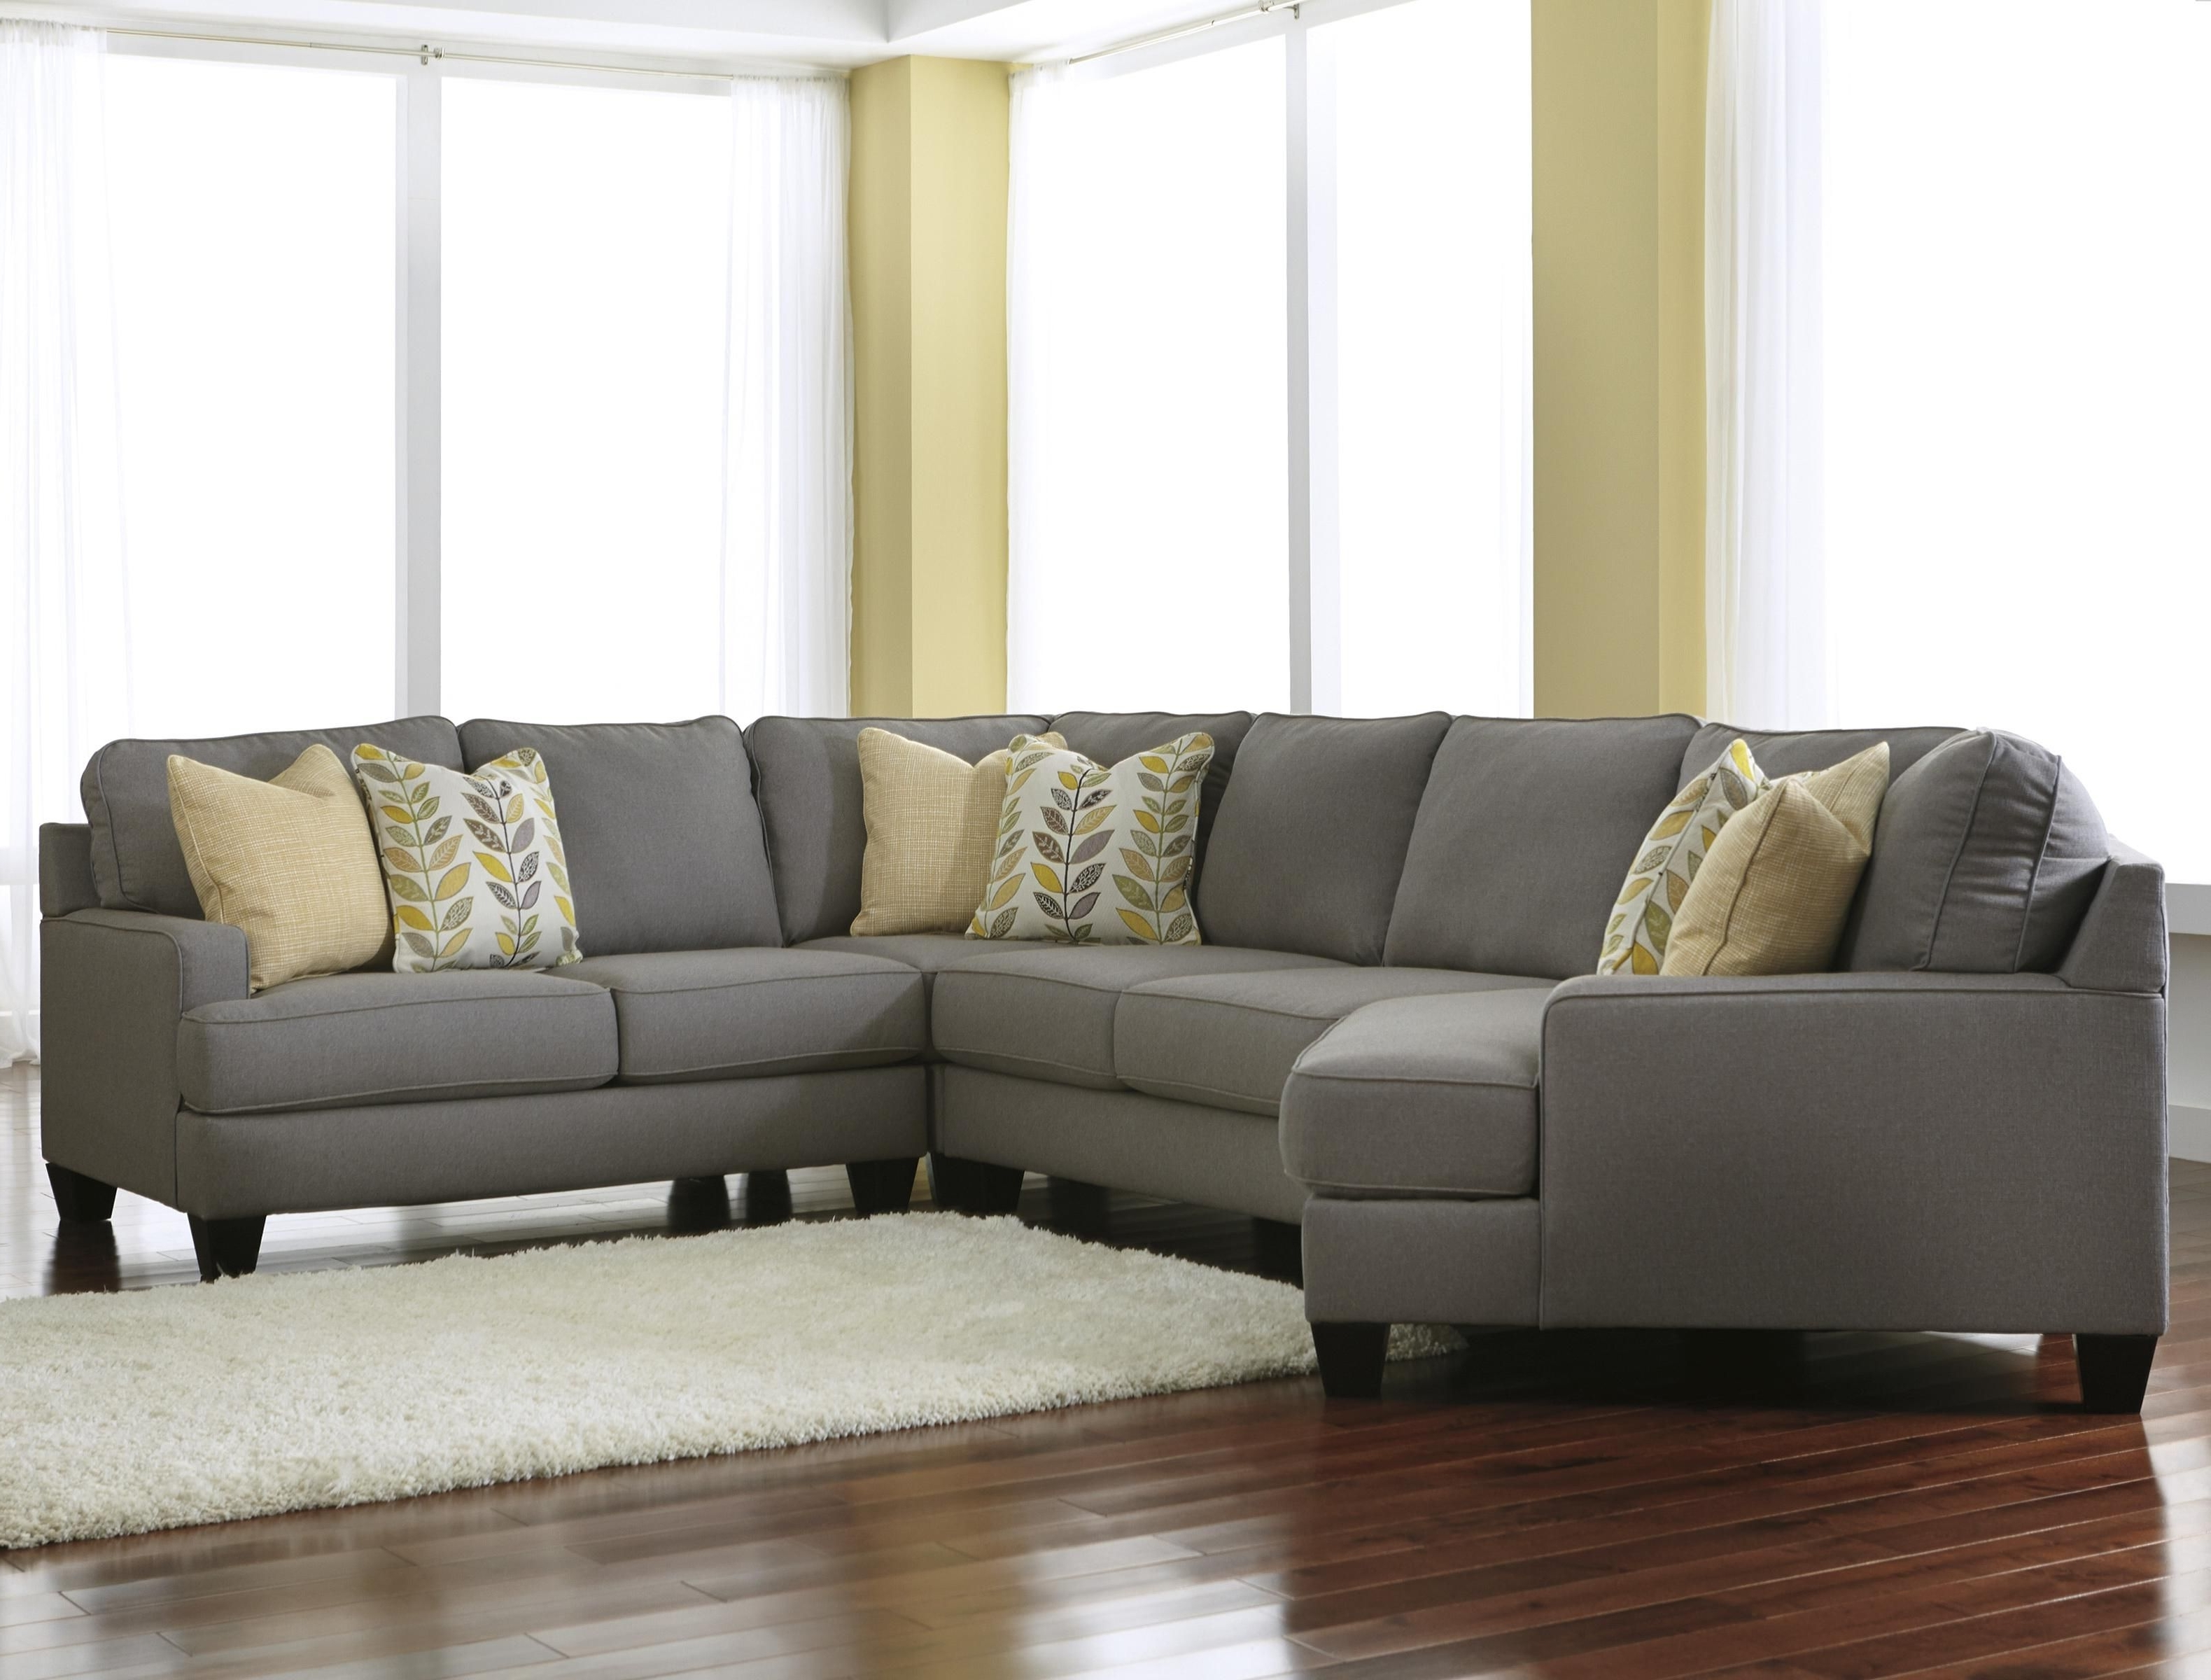 Chamberly – Alloy Modern 4 Piece Sectional Sofa With Left Cuddler Throughout Famous Johnson City Tn Sectional Sofas (View 5 of 20)